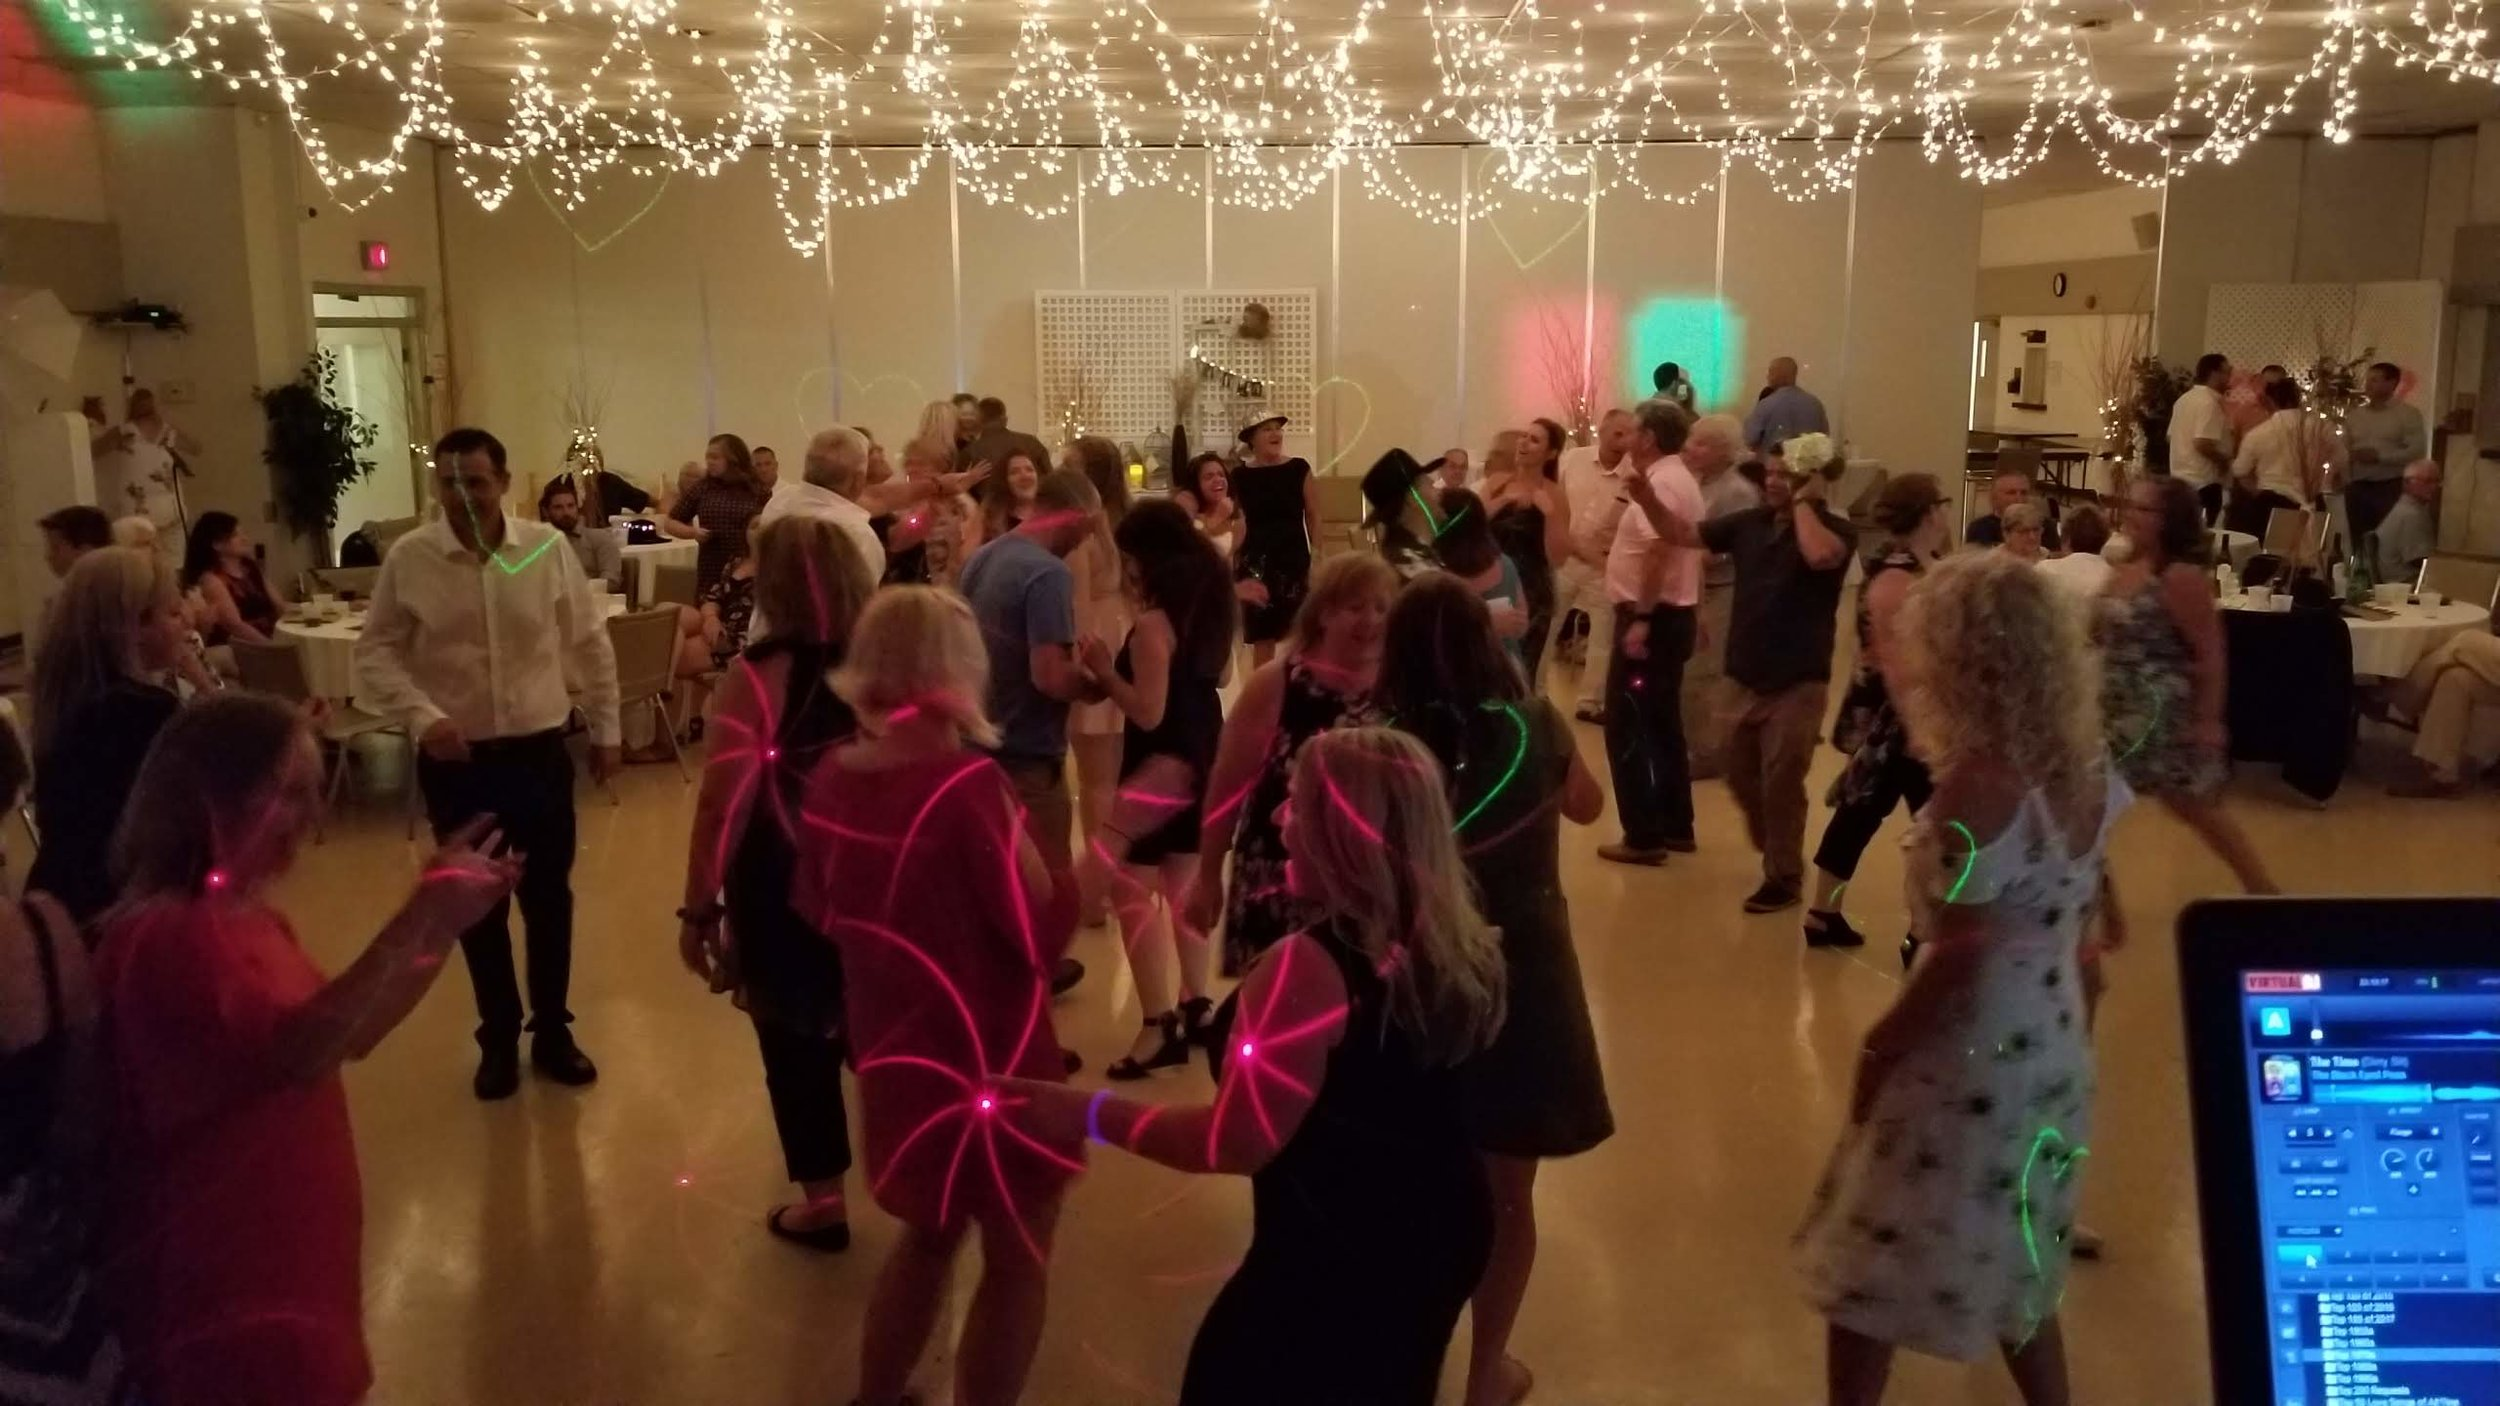 lions_community_centre_wedding_dancing.jpg